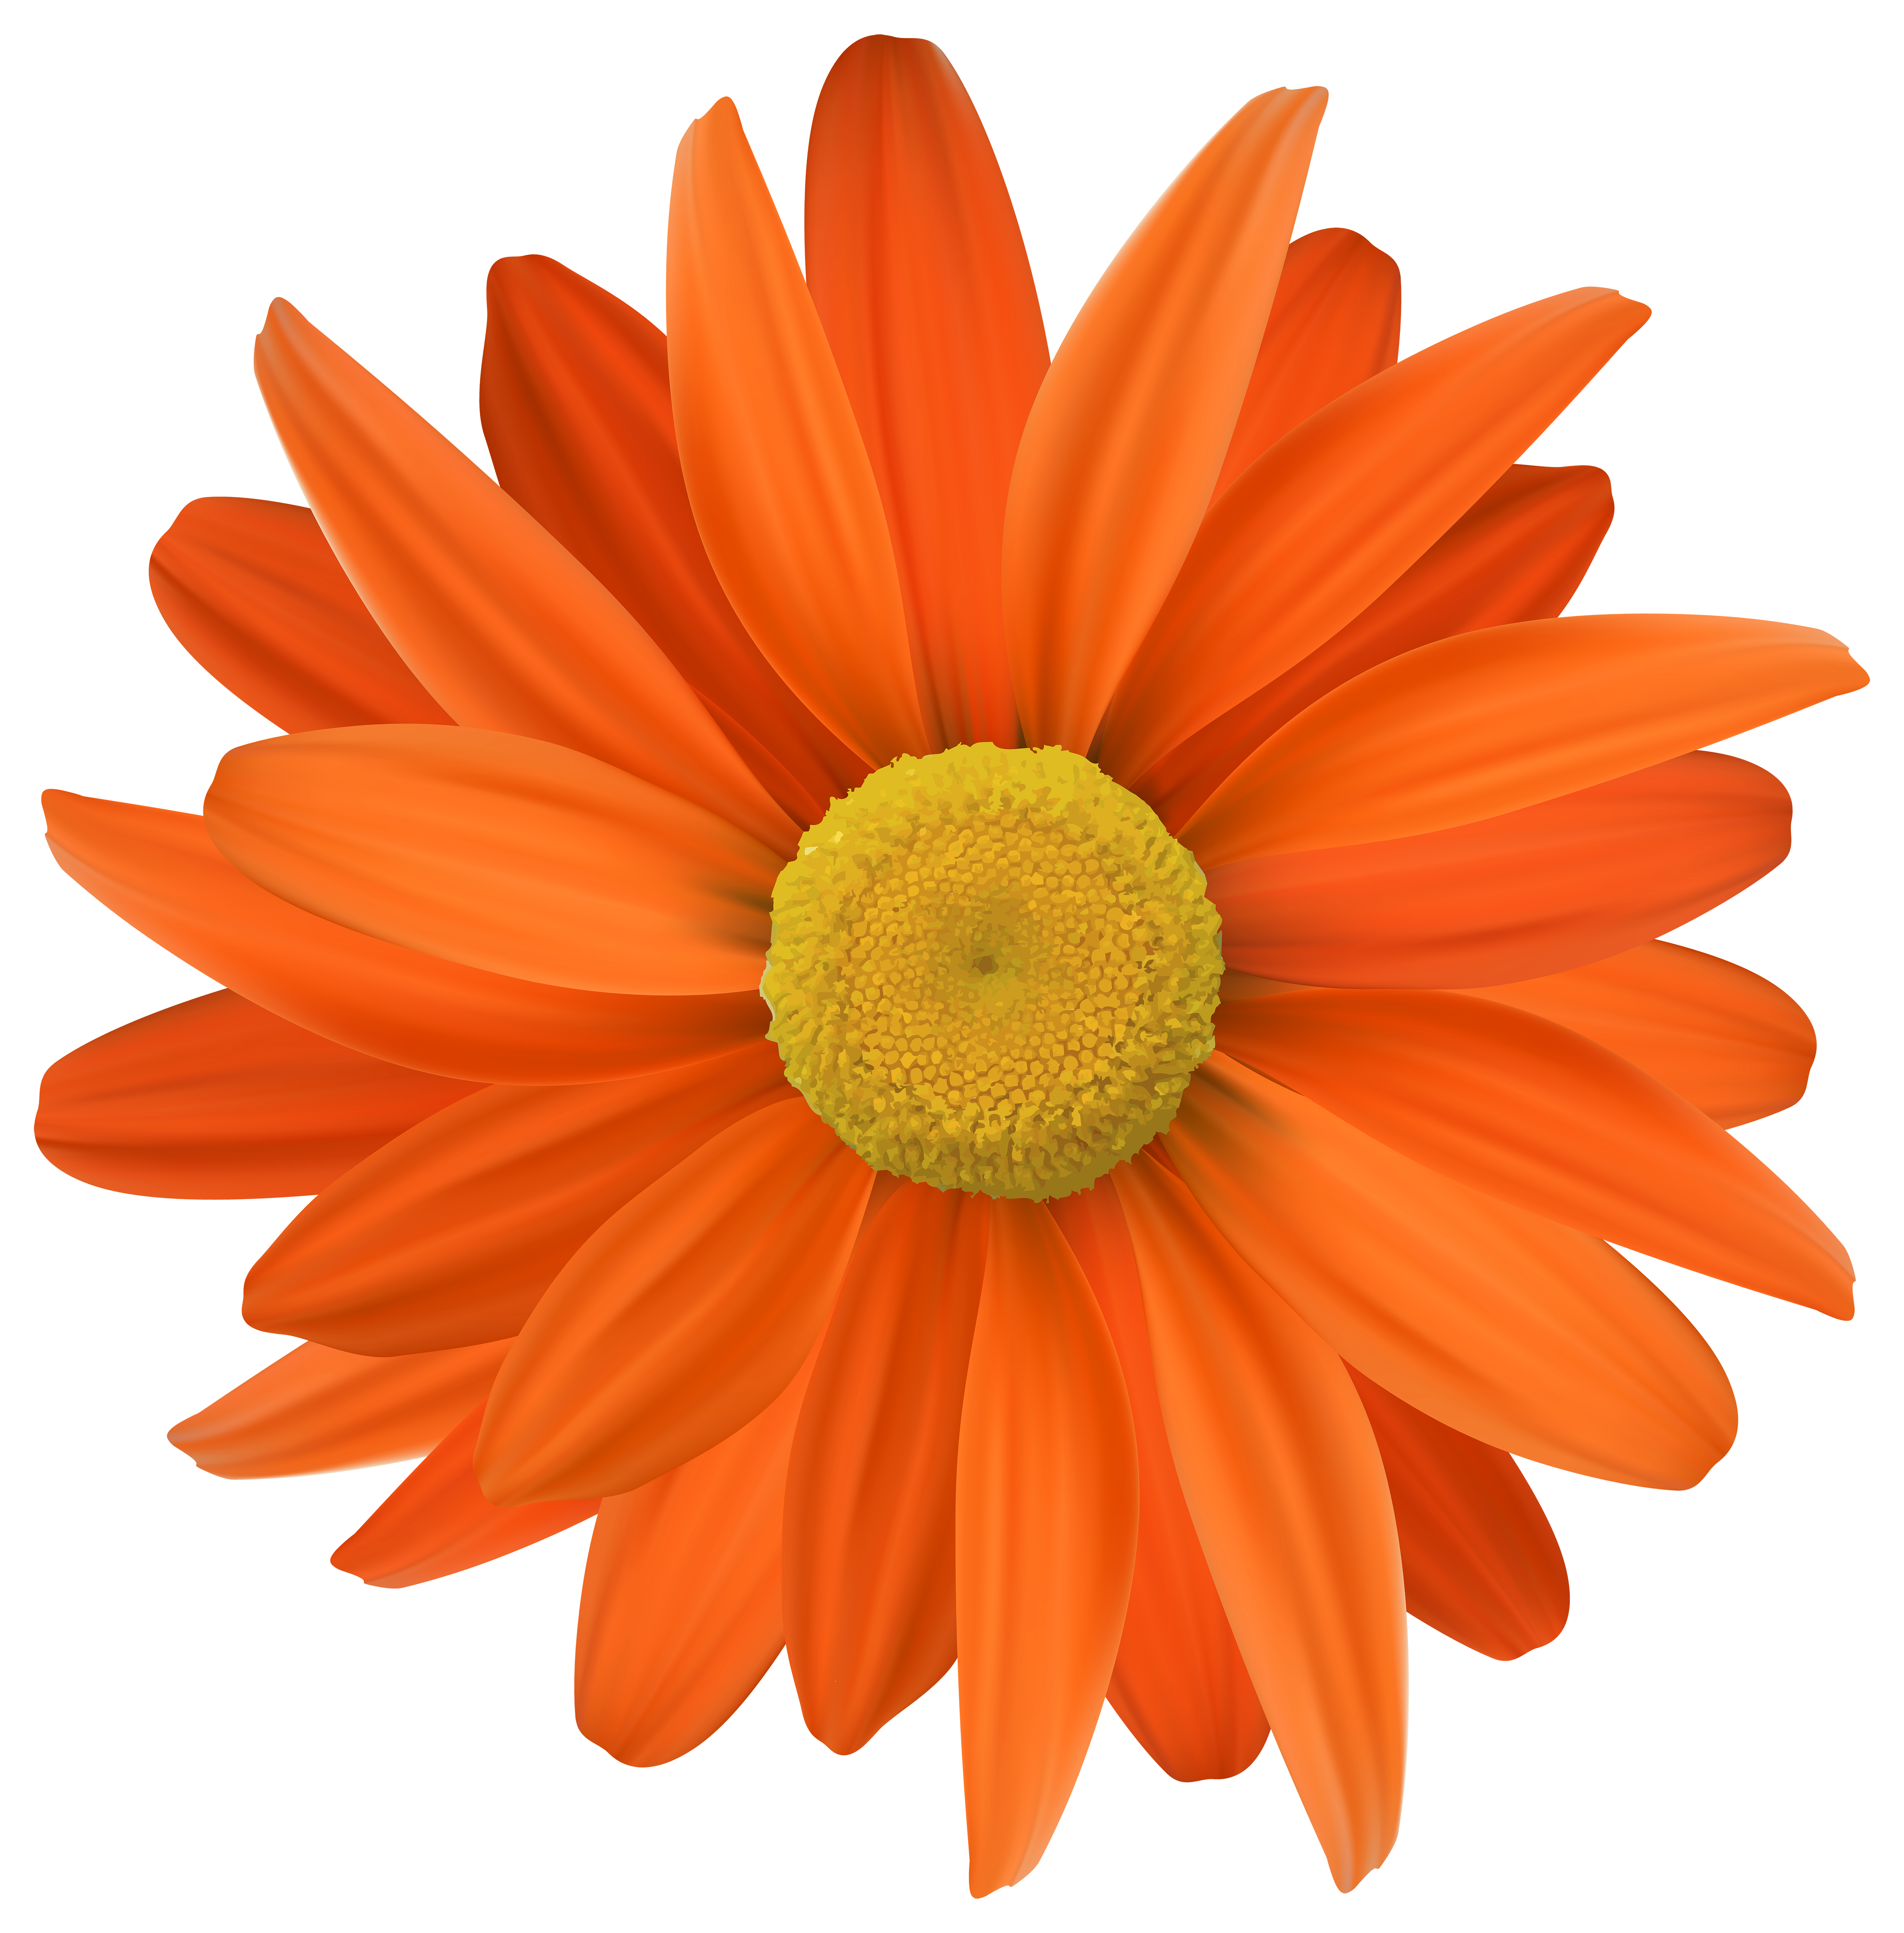 Orange flower png. Transparent clip art gallery